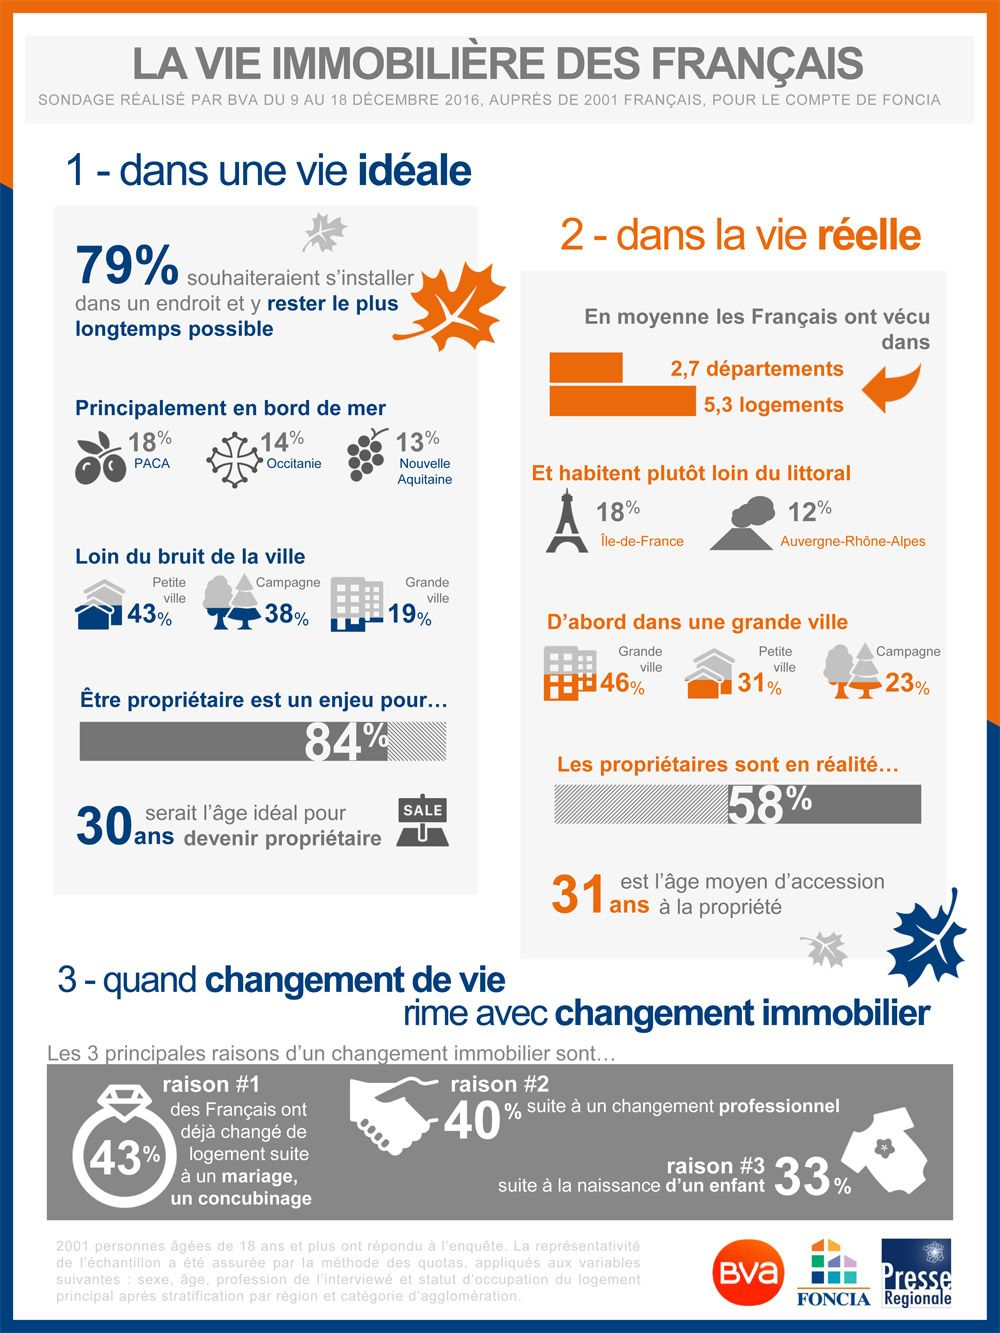 Img - Infographie_vie_immobilier.jpg